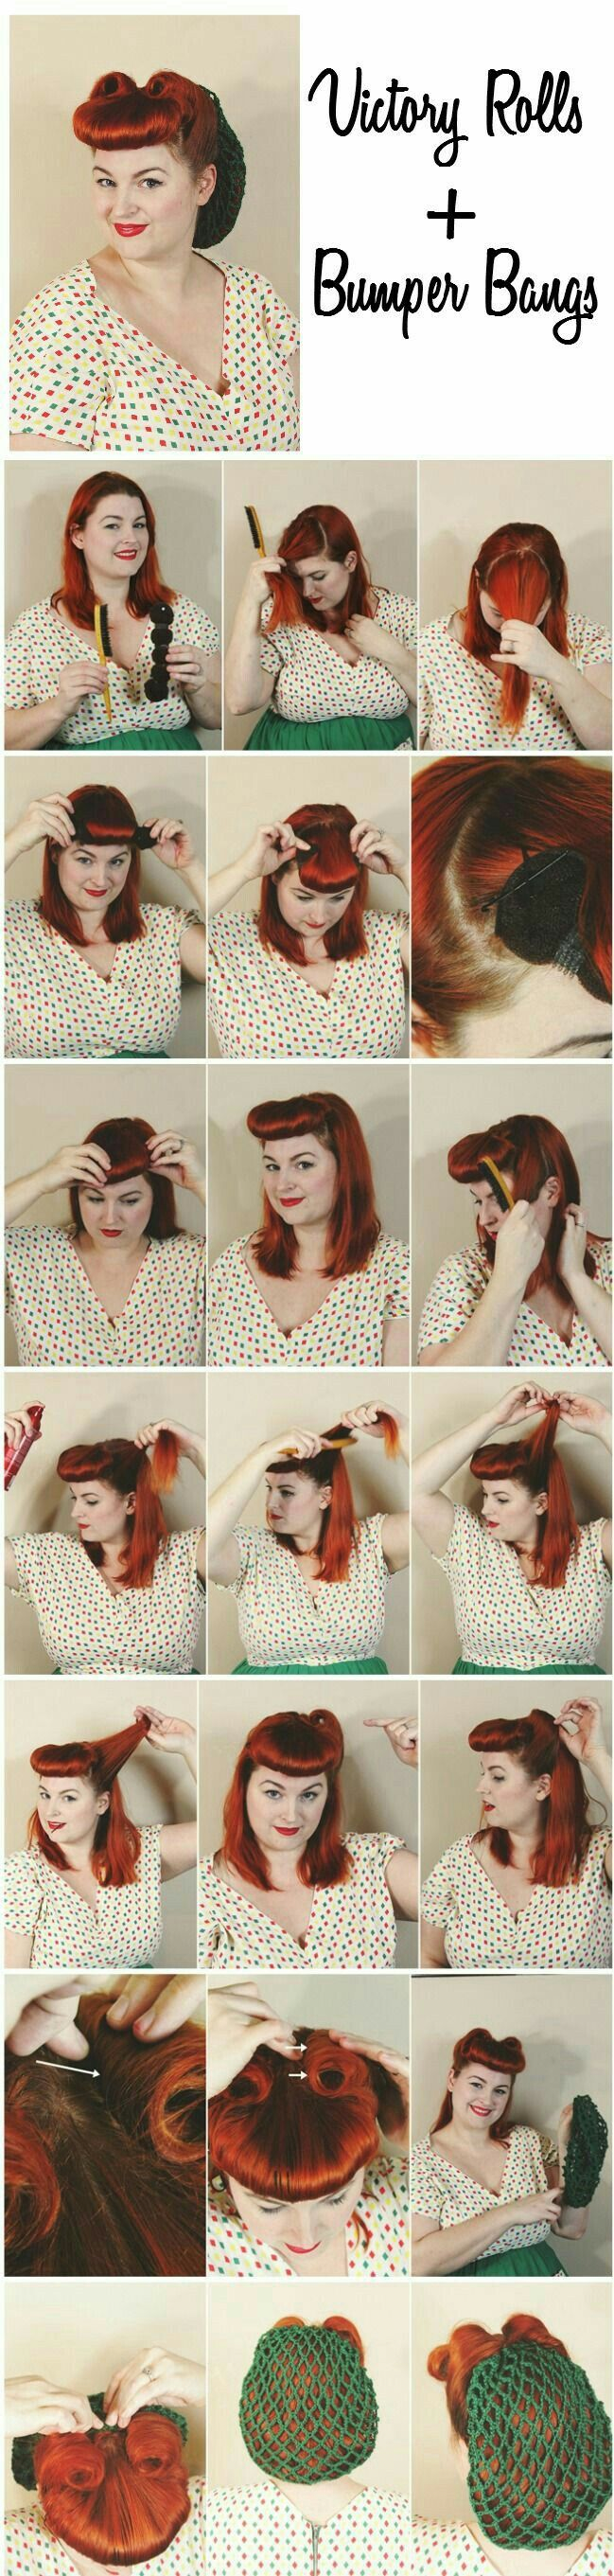 Pin-Up / Rockabilly - Hair (Victory Rolls and Bumper Bangs)